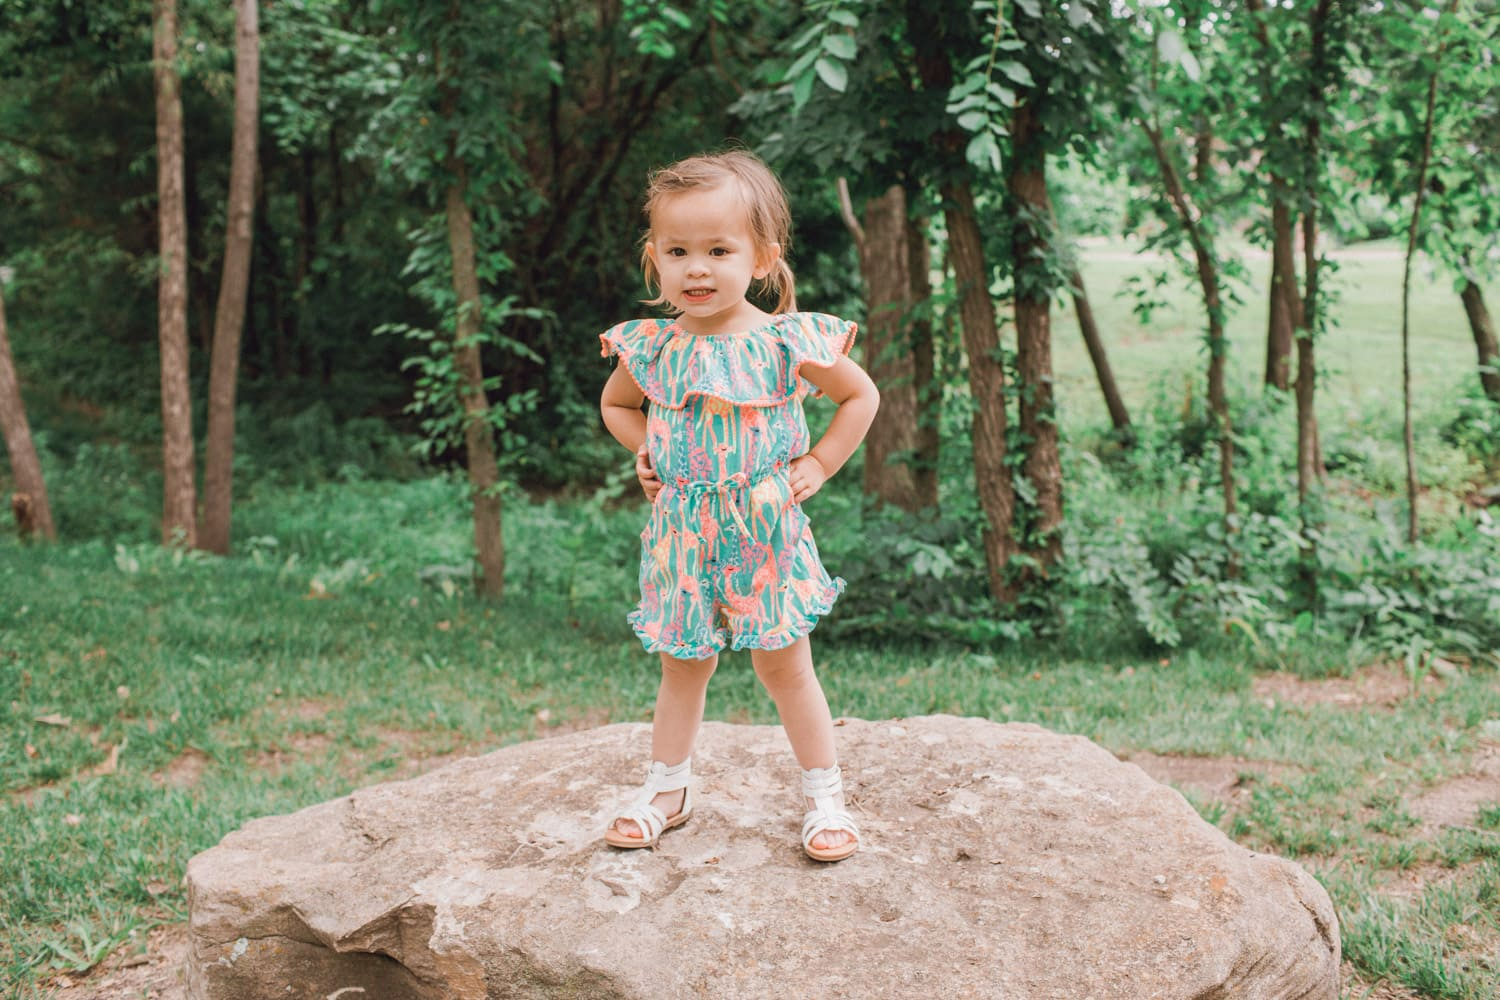 Giraffe Romper for Kids - Safari Zoo Jungle Themed Romper for little girls that is super adorable and cute! Great outfit for a two year old.